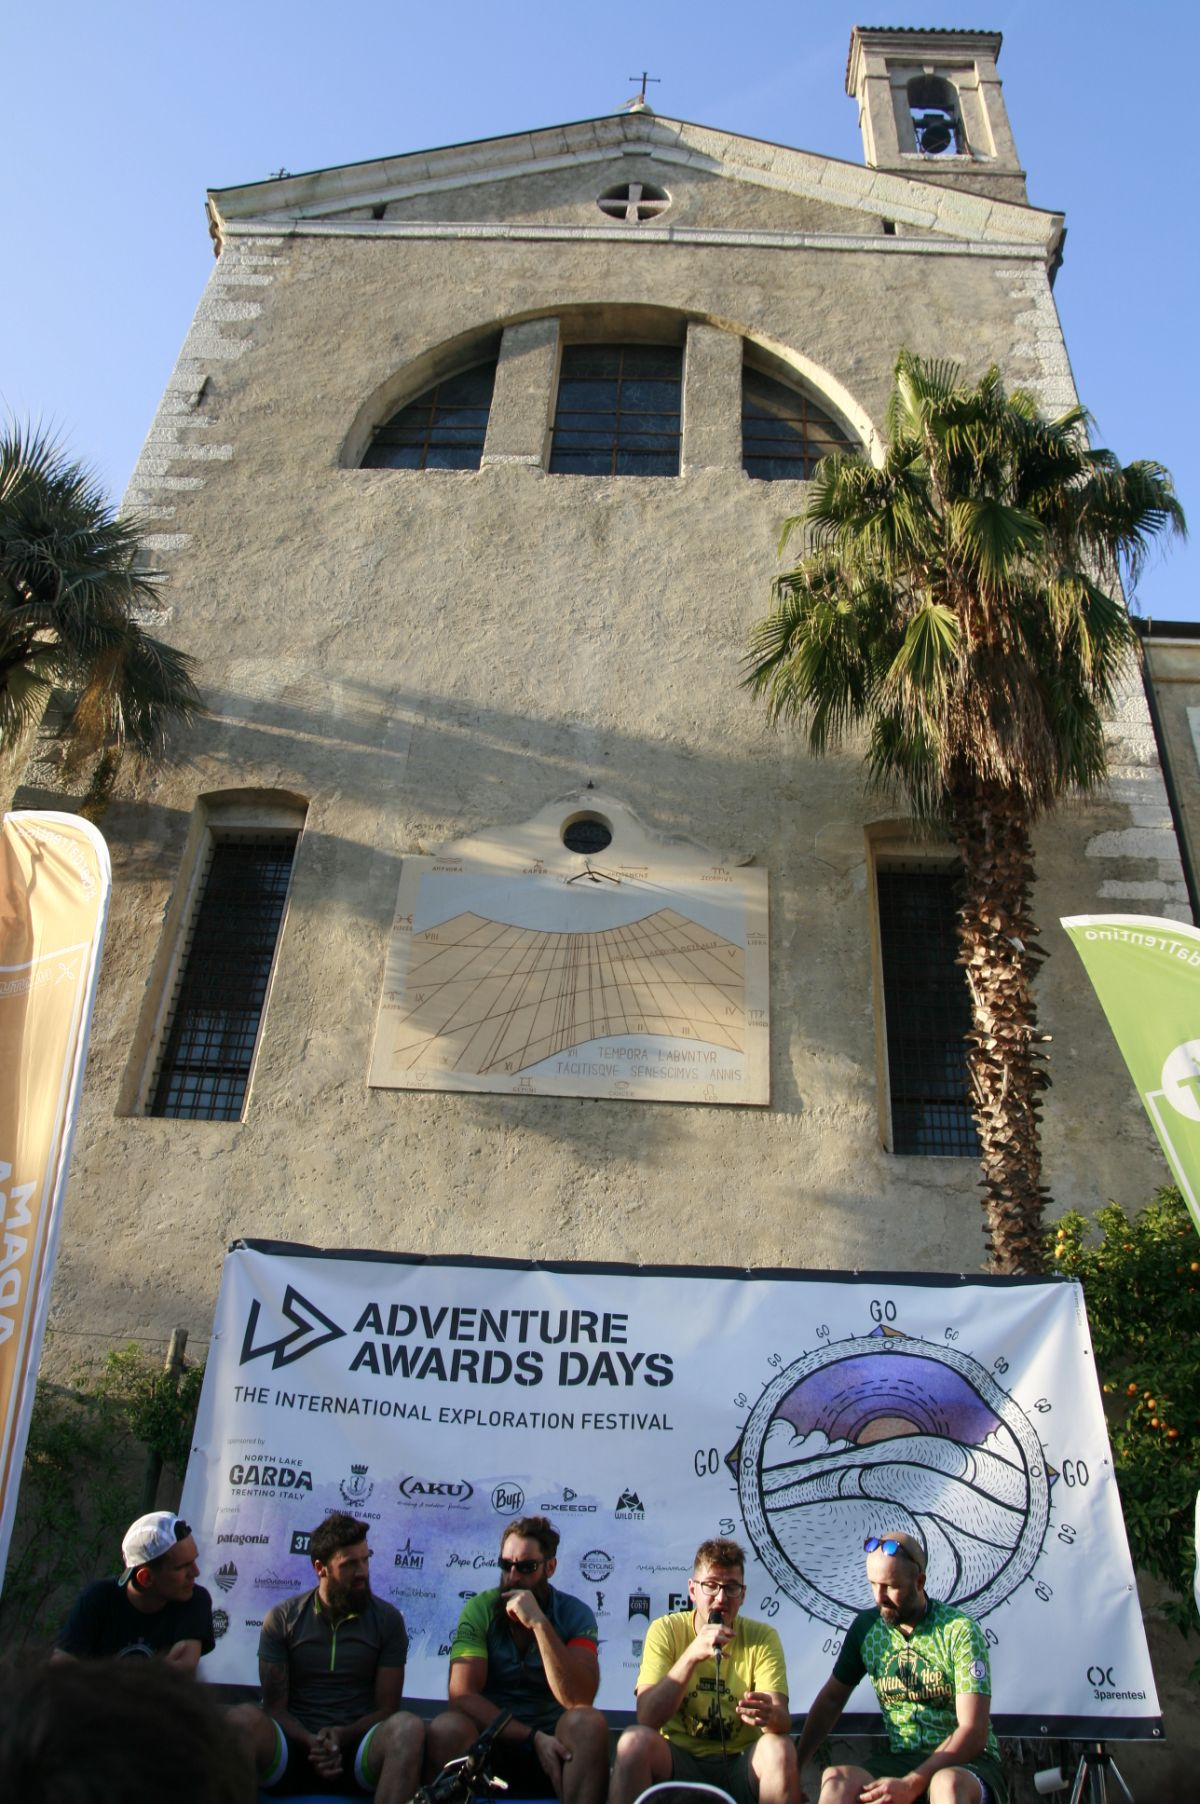 Arco Adventure Awards